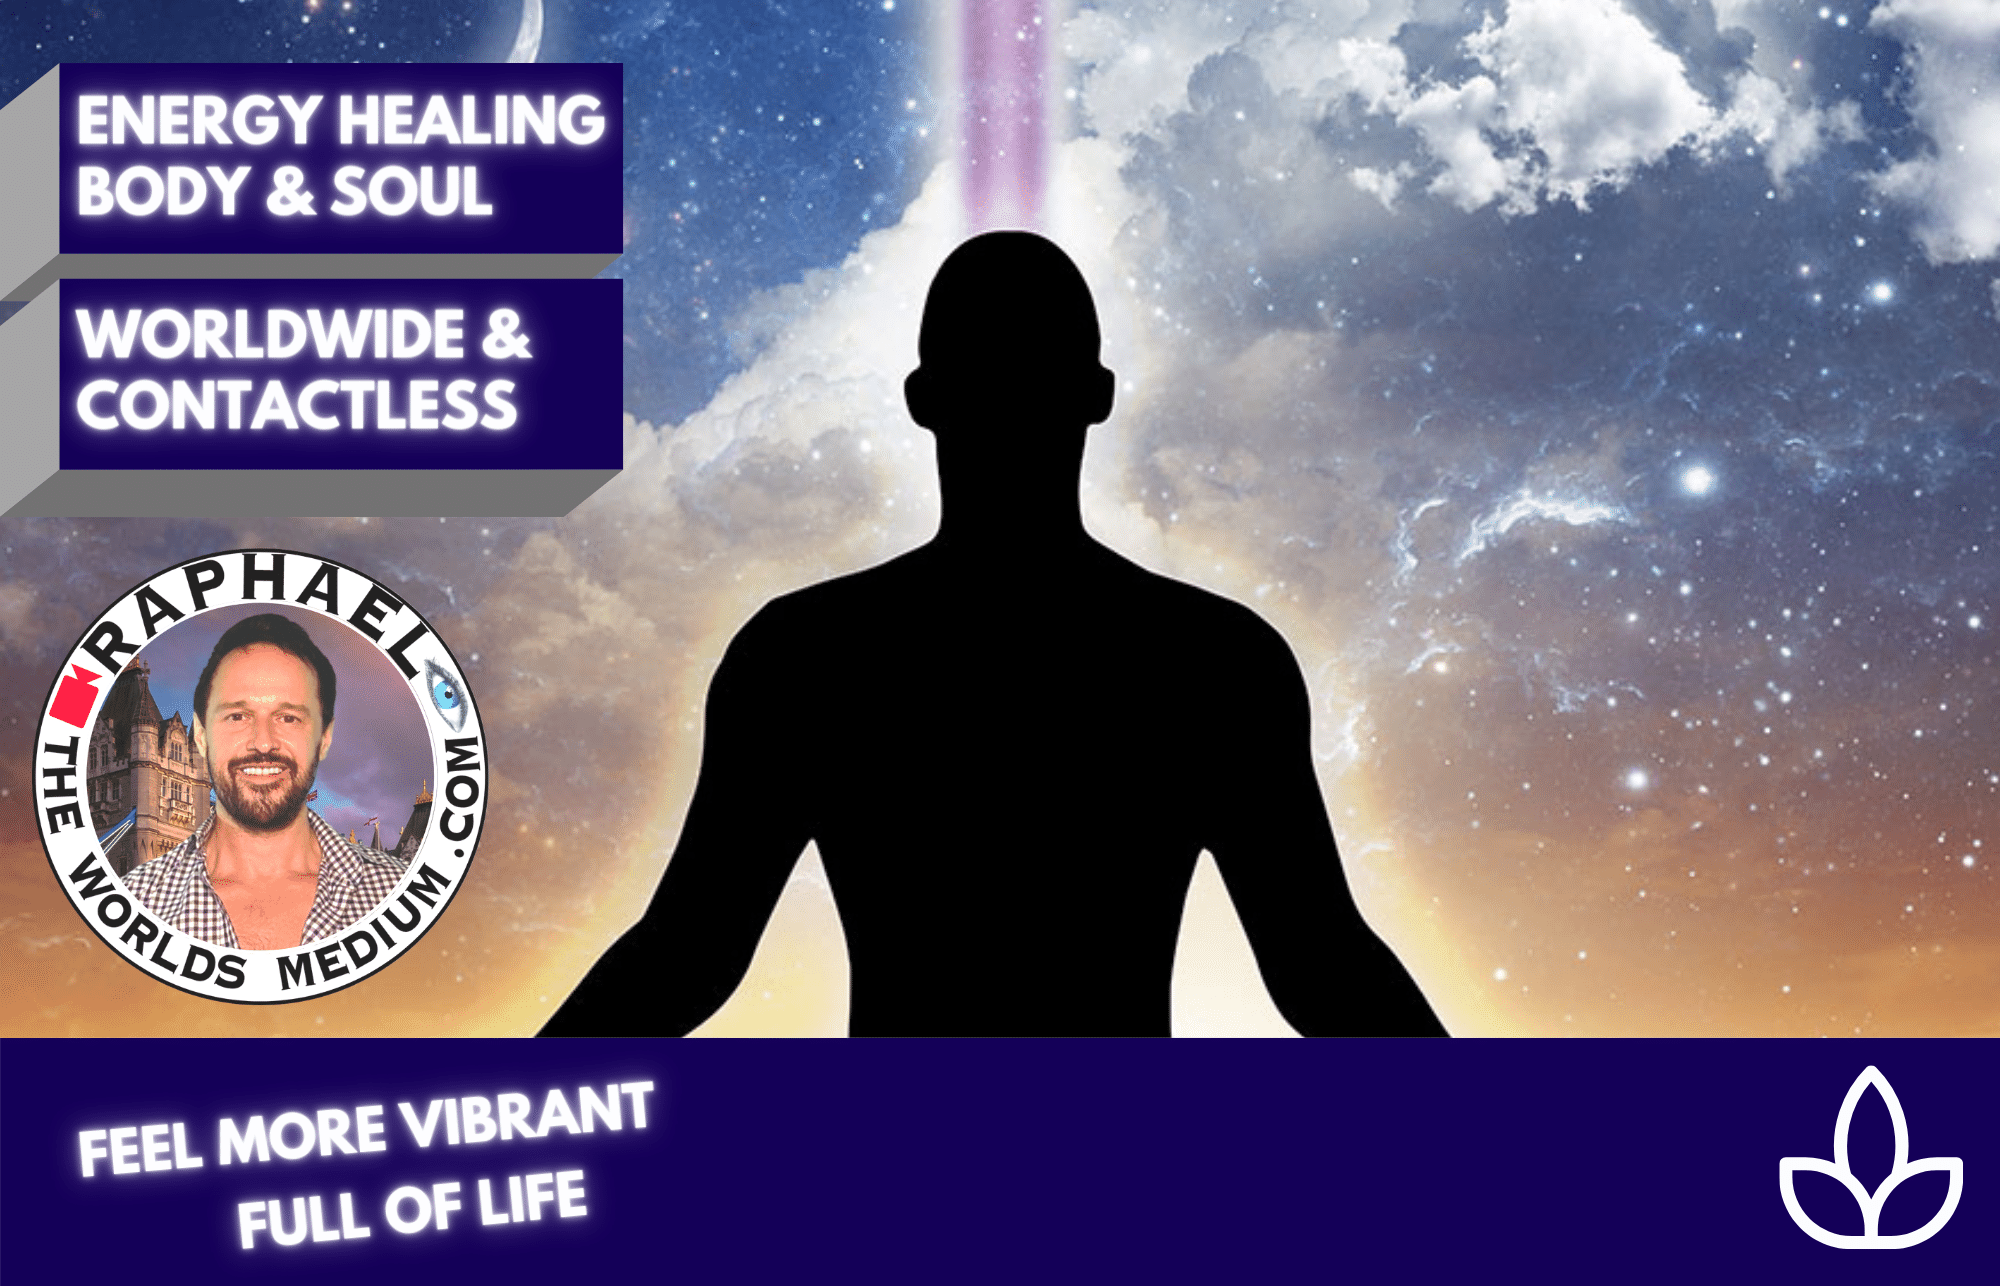 Energy healing body and soul